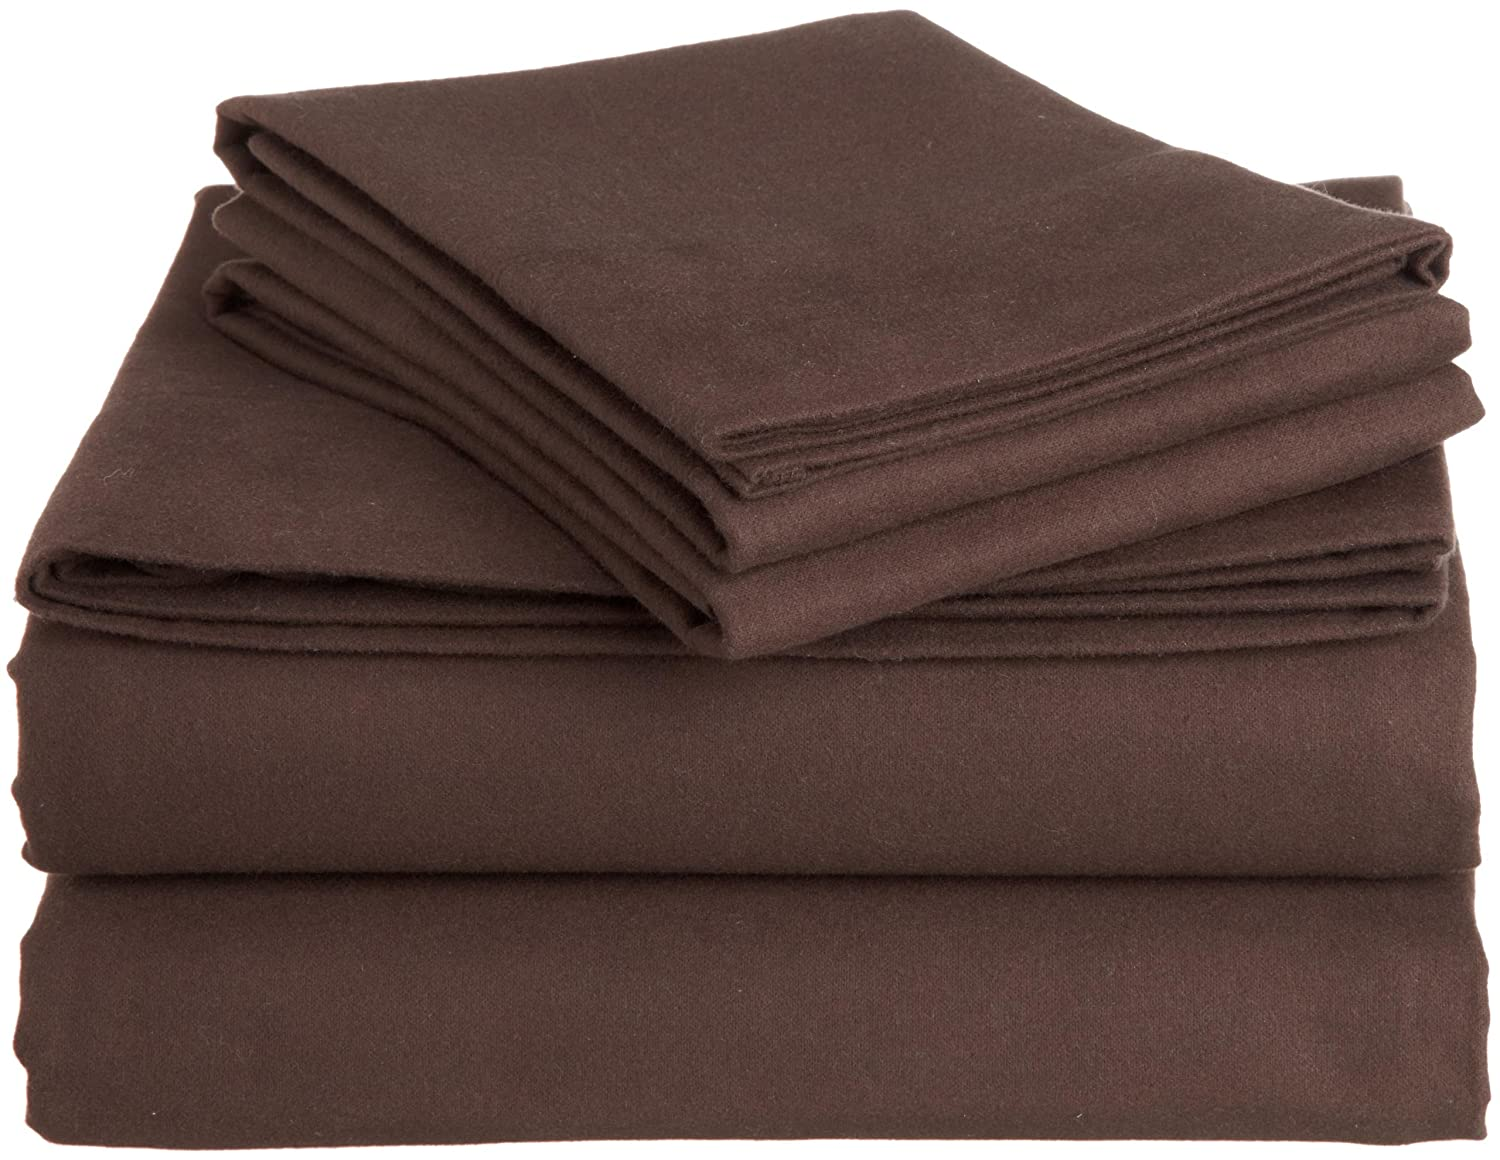 Queen Size Sheet Sets Queen Size Ultra Soft Cotton Velvet Flannel Bed Sheets